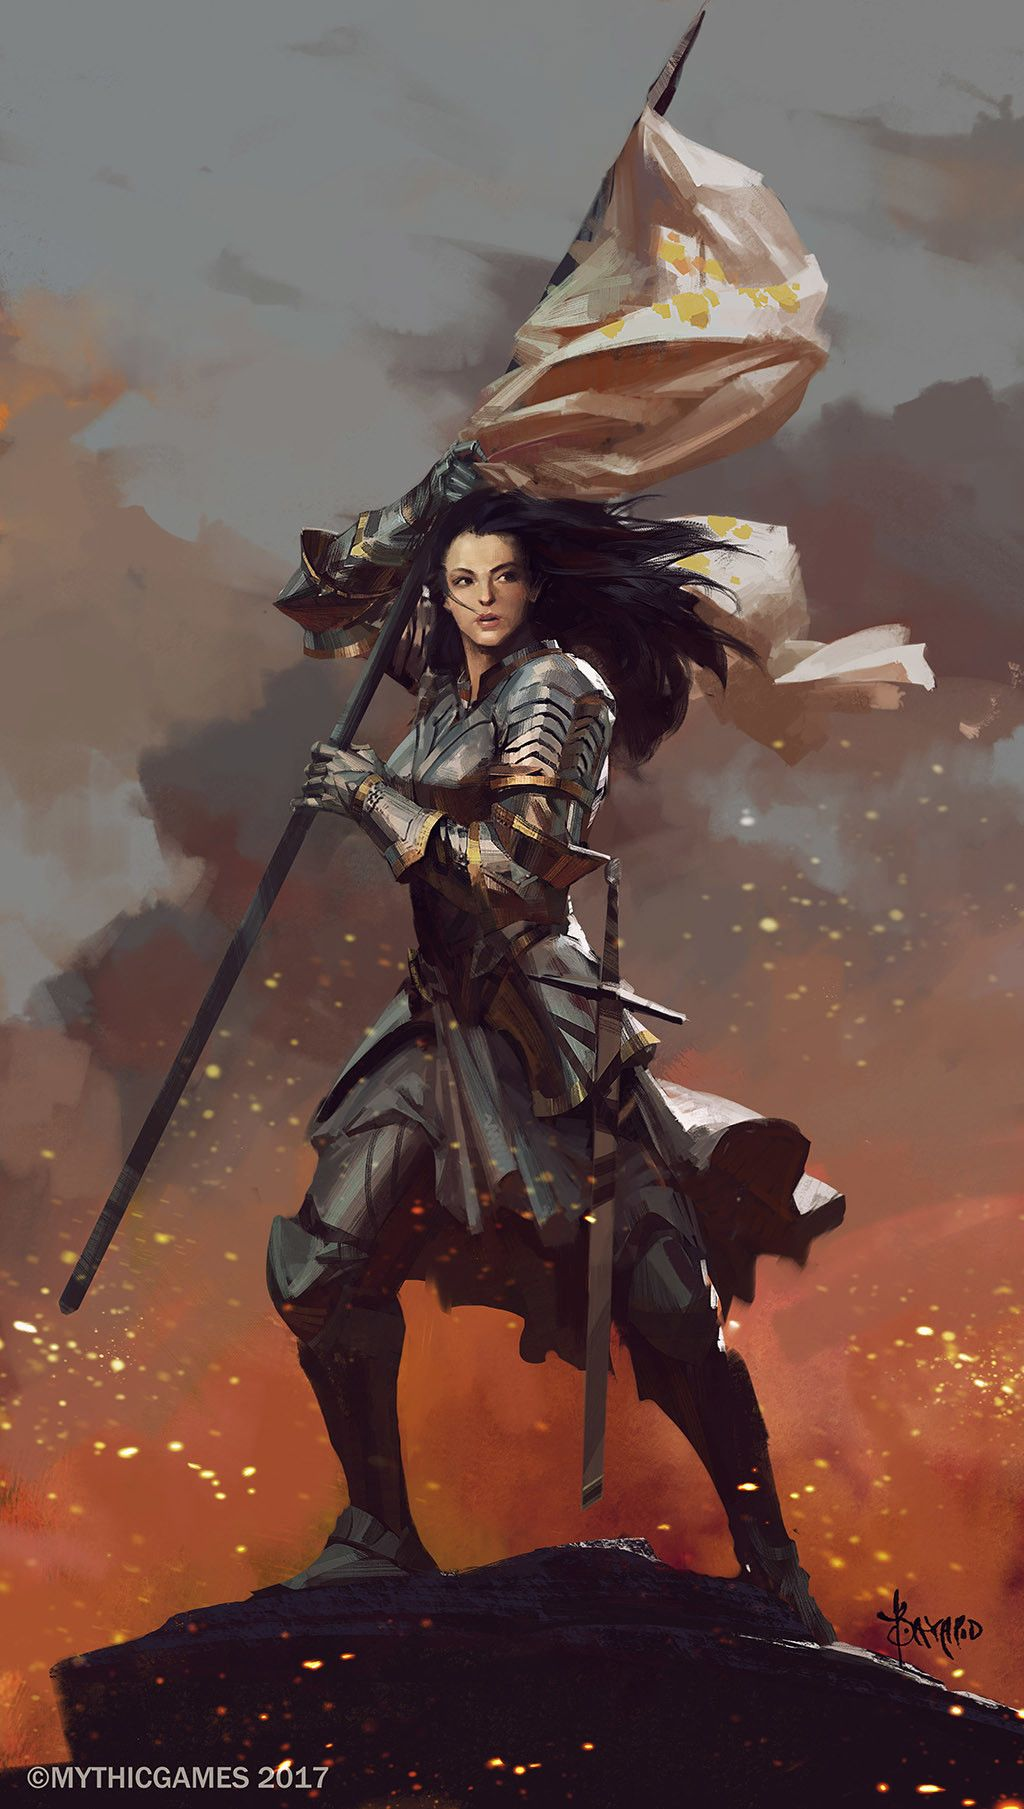 Pin by JB Tarrant on World Building— Sci-Fi Characters | Fantasy